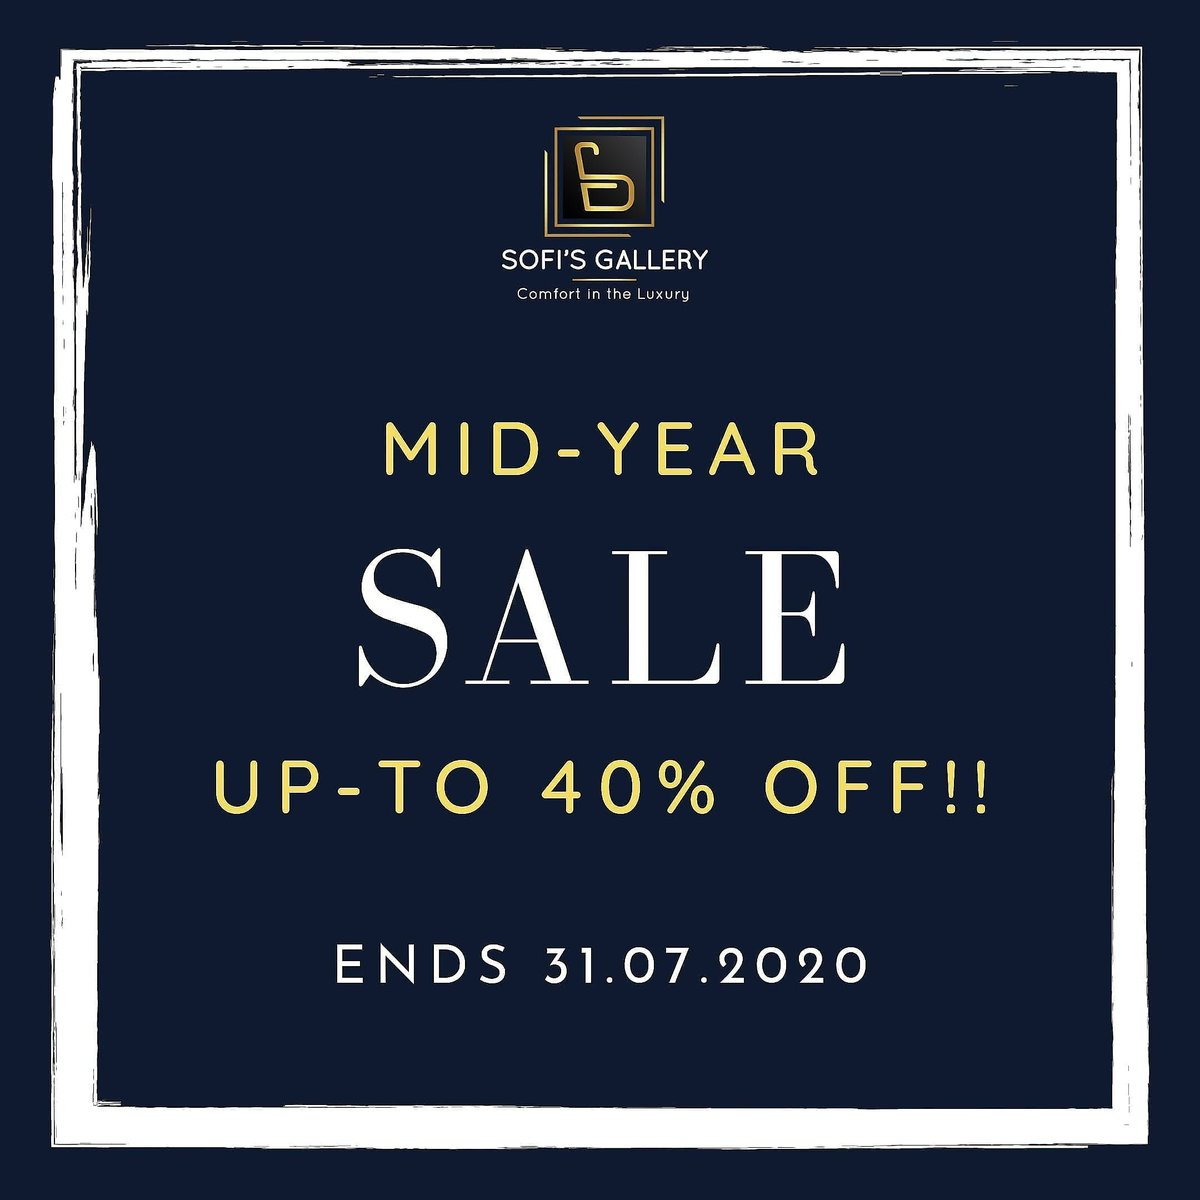 Good morning. Our #sale is still going! And quality products are selling out FAST! Head over to @TwoRivers_KE 1st floor #Nairobi #UhuruCares https://t.co/ibnDRrcO9s